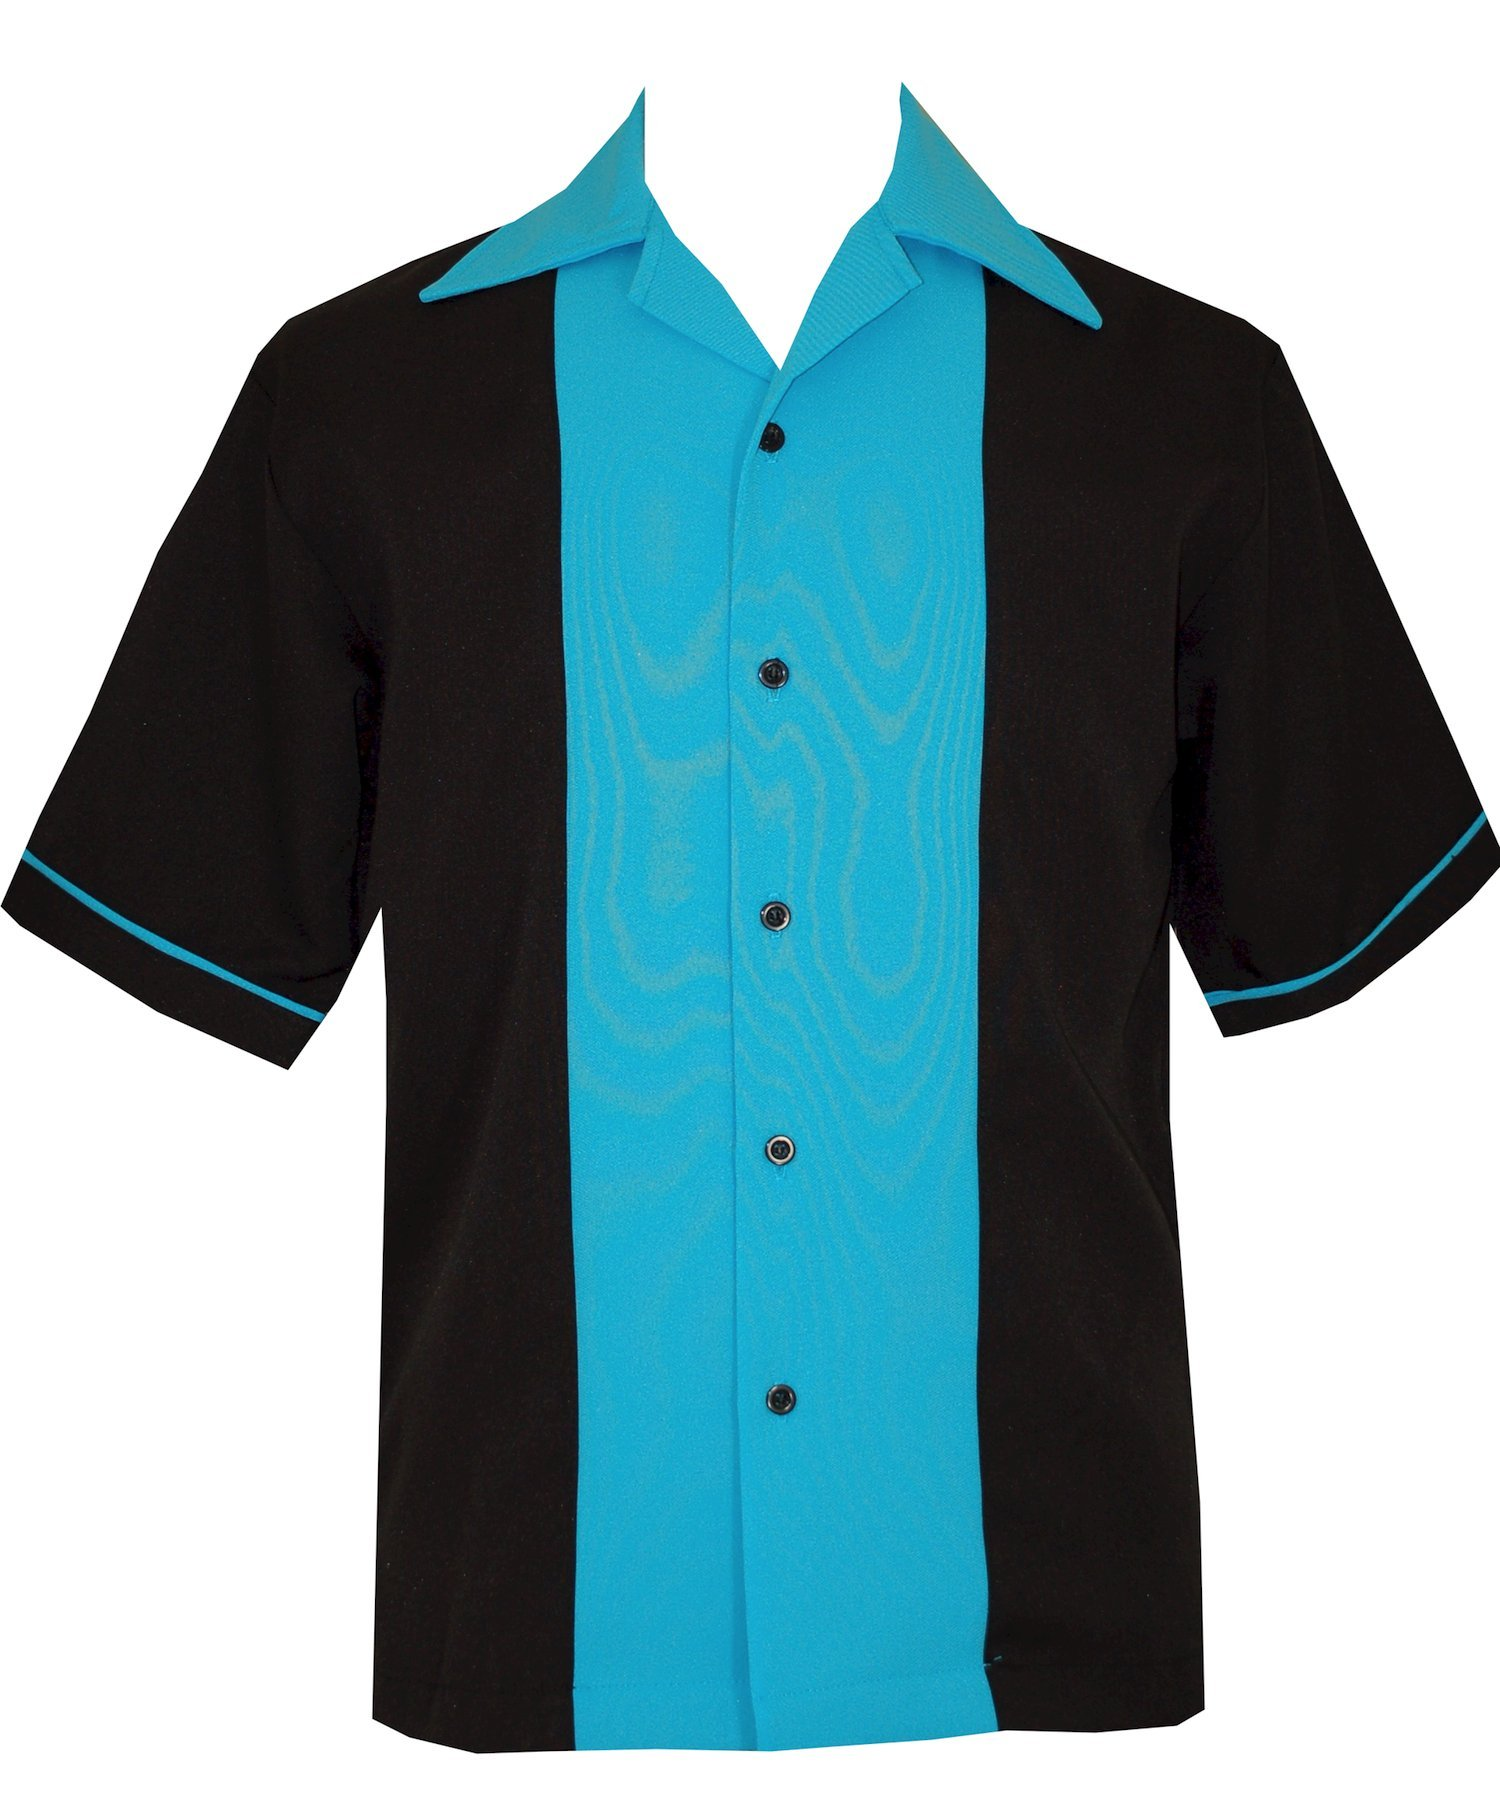 Bowling Retro Men's Short-Sleeve USA Made Shirt ~ 50's Classic (S) Turquoise